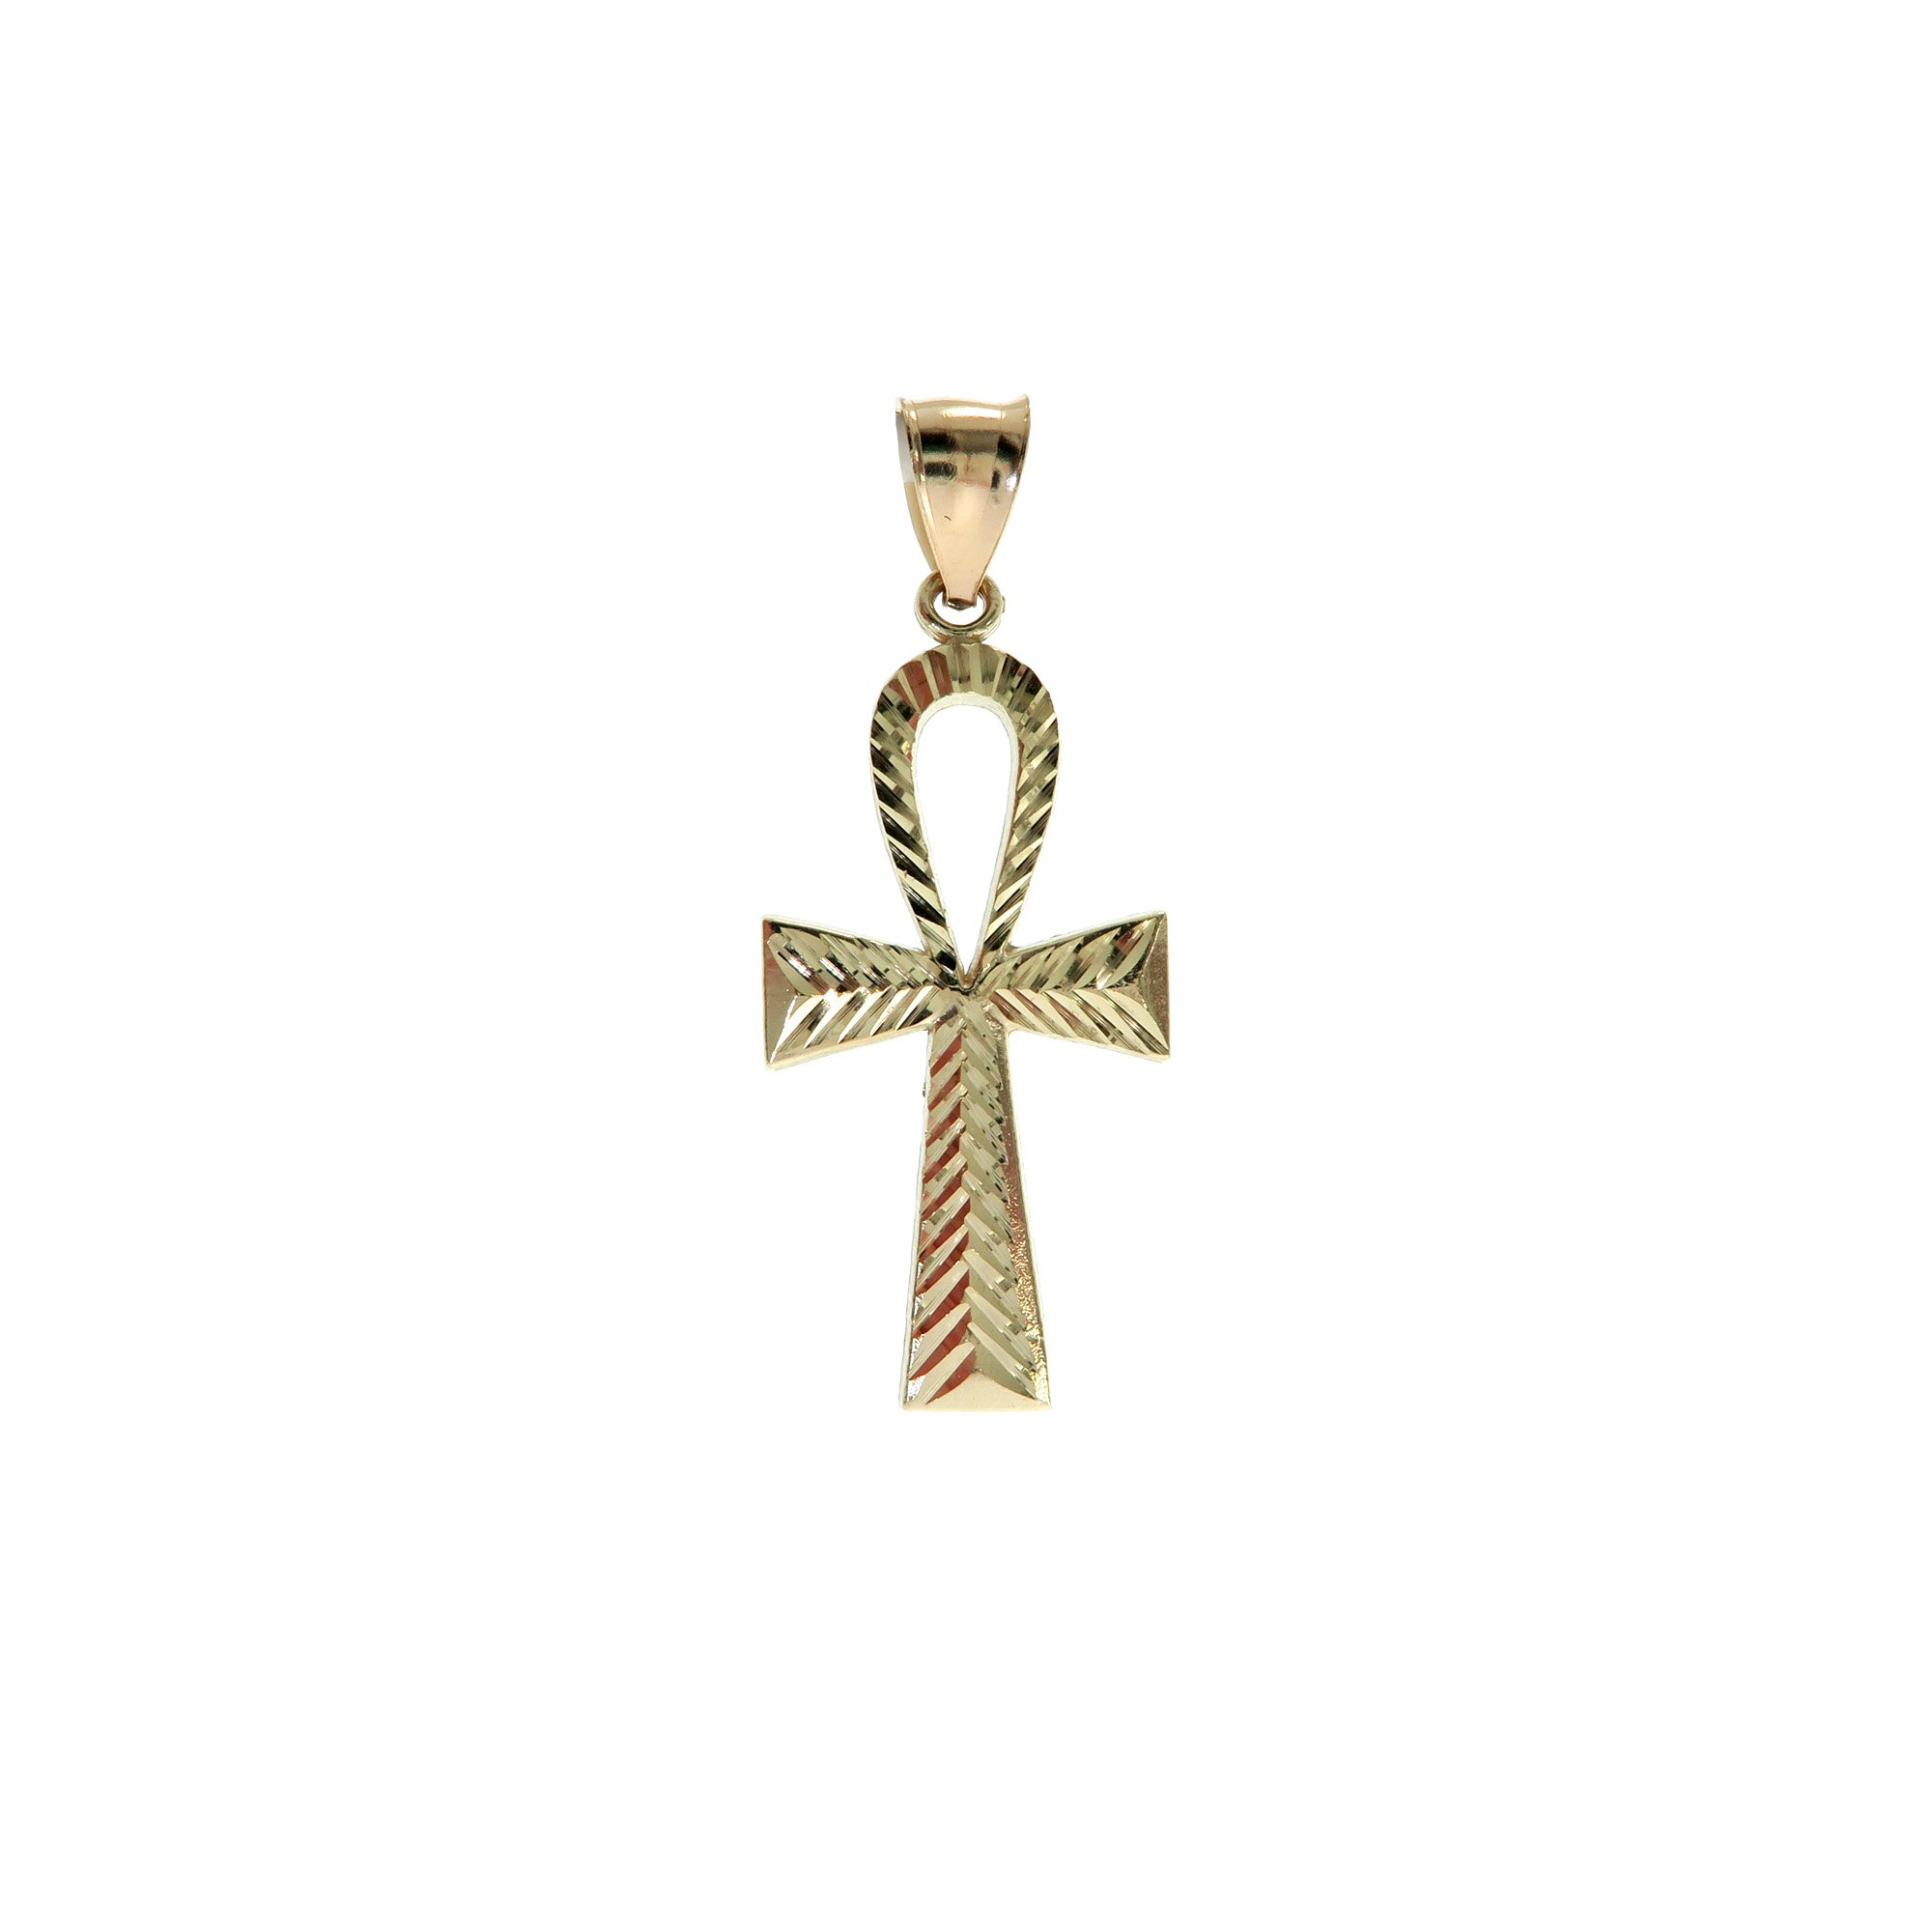 Genuine Stamped Authentic 10K Yellow Two-Tone Gold Charm Pendant Hip Hop Jewelry Gift Christmas Present (Ankh Cross) by Traxnyc (Image #1)